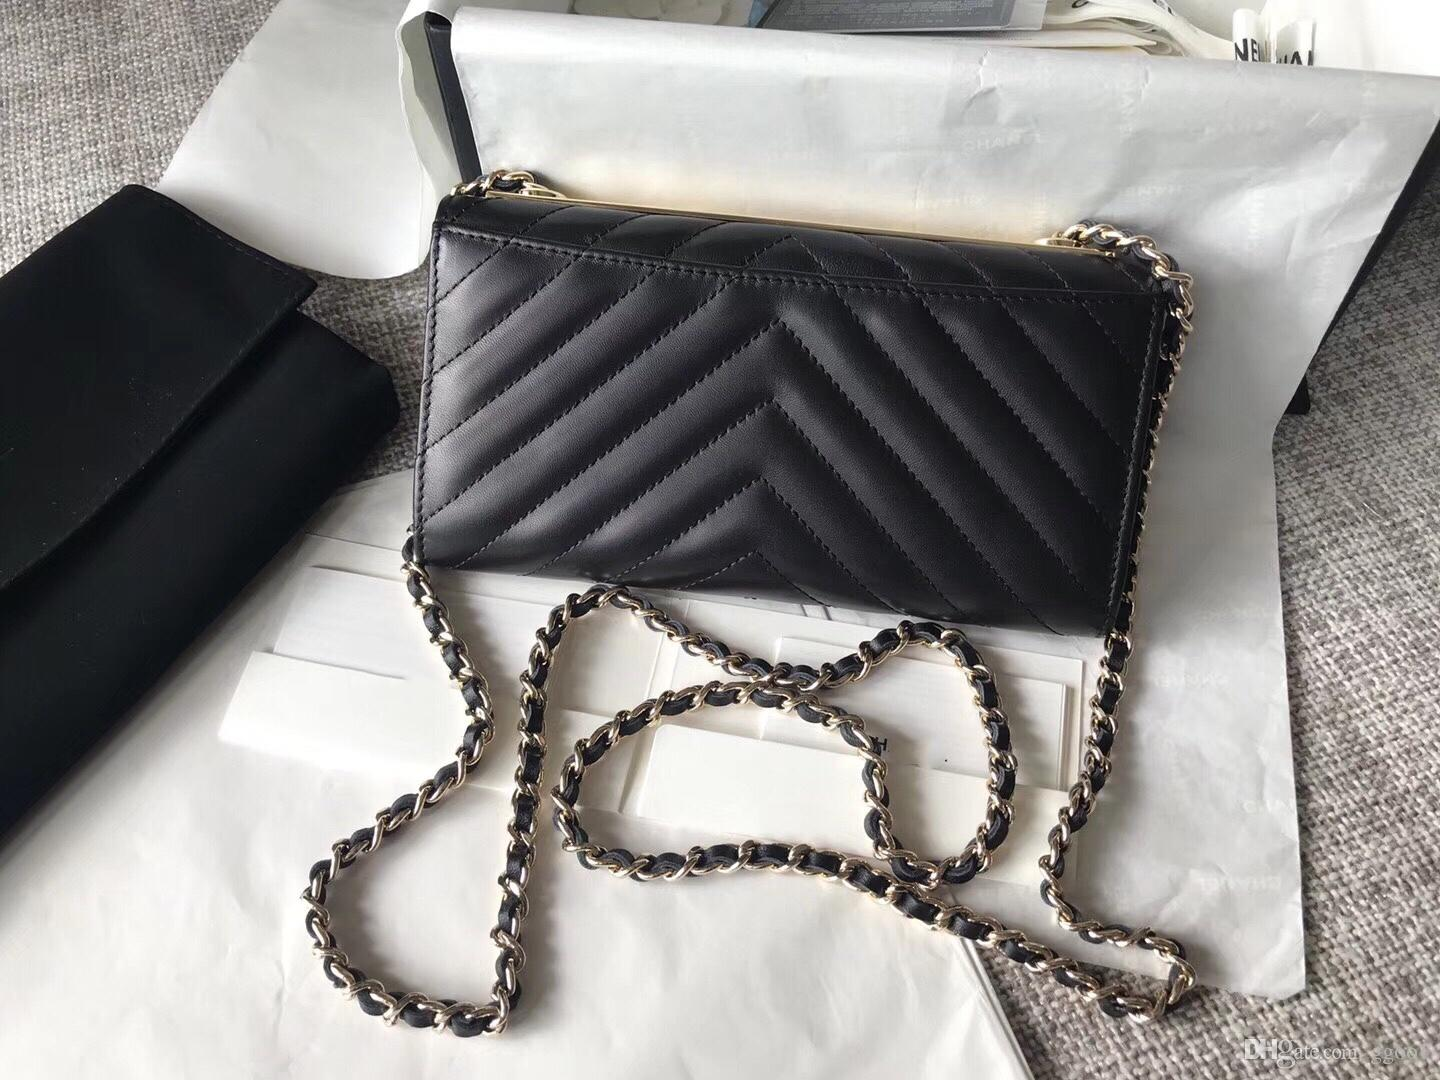 a83257acd66c 2018 Lambskin Chevron Falp Bag 19cm Designer Luxury Handbags Purses Lady  Fashion Chain Shoulder Bag 7A Top Quality Free Shopping Leather Briefcase  Wholesale ...